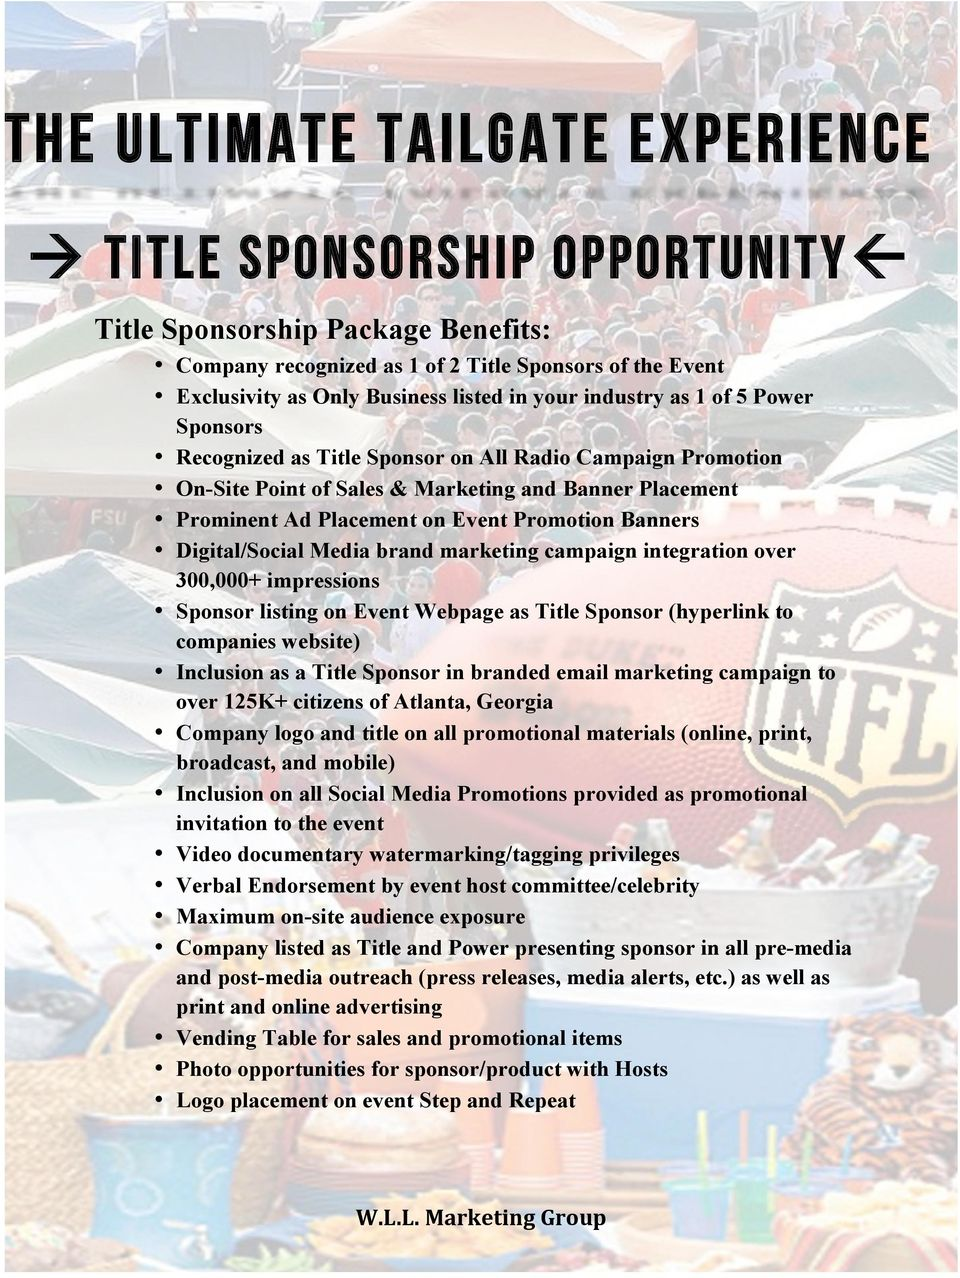 brand marketing campaign integration over 300,000+ impressions Sponsor listing on Event Webpage as Title Sponsor (hyperlink to companies website) Inclusion as a Title Sponsor in branded email